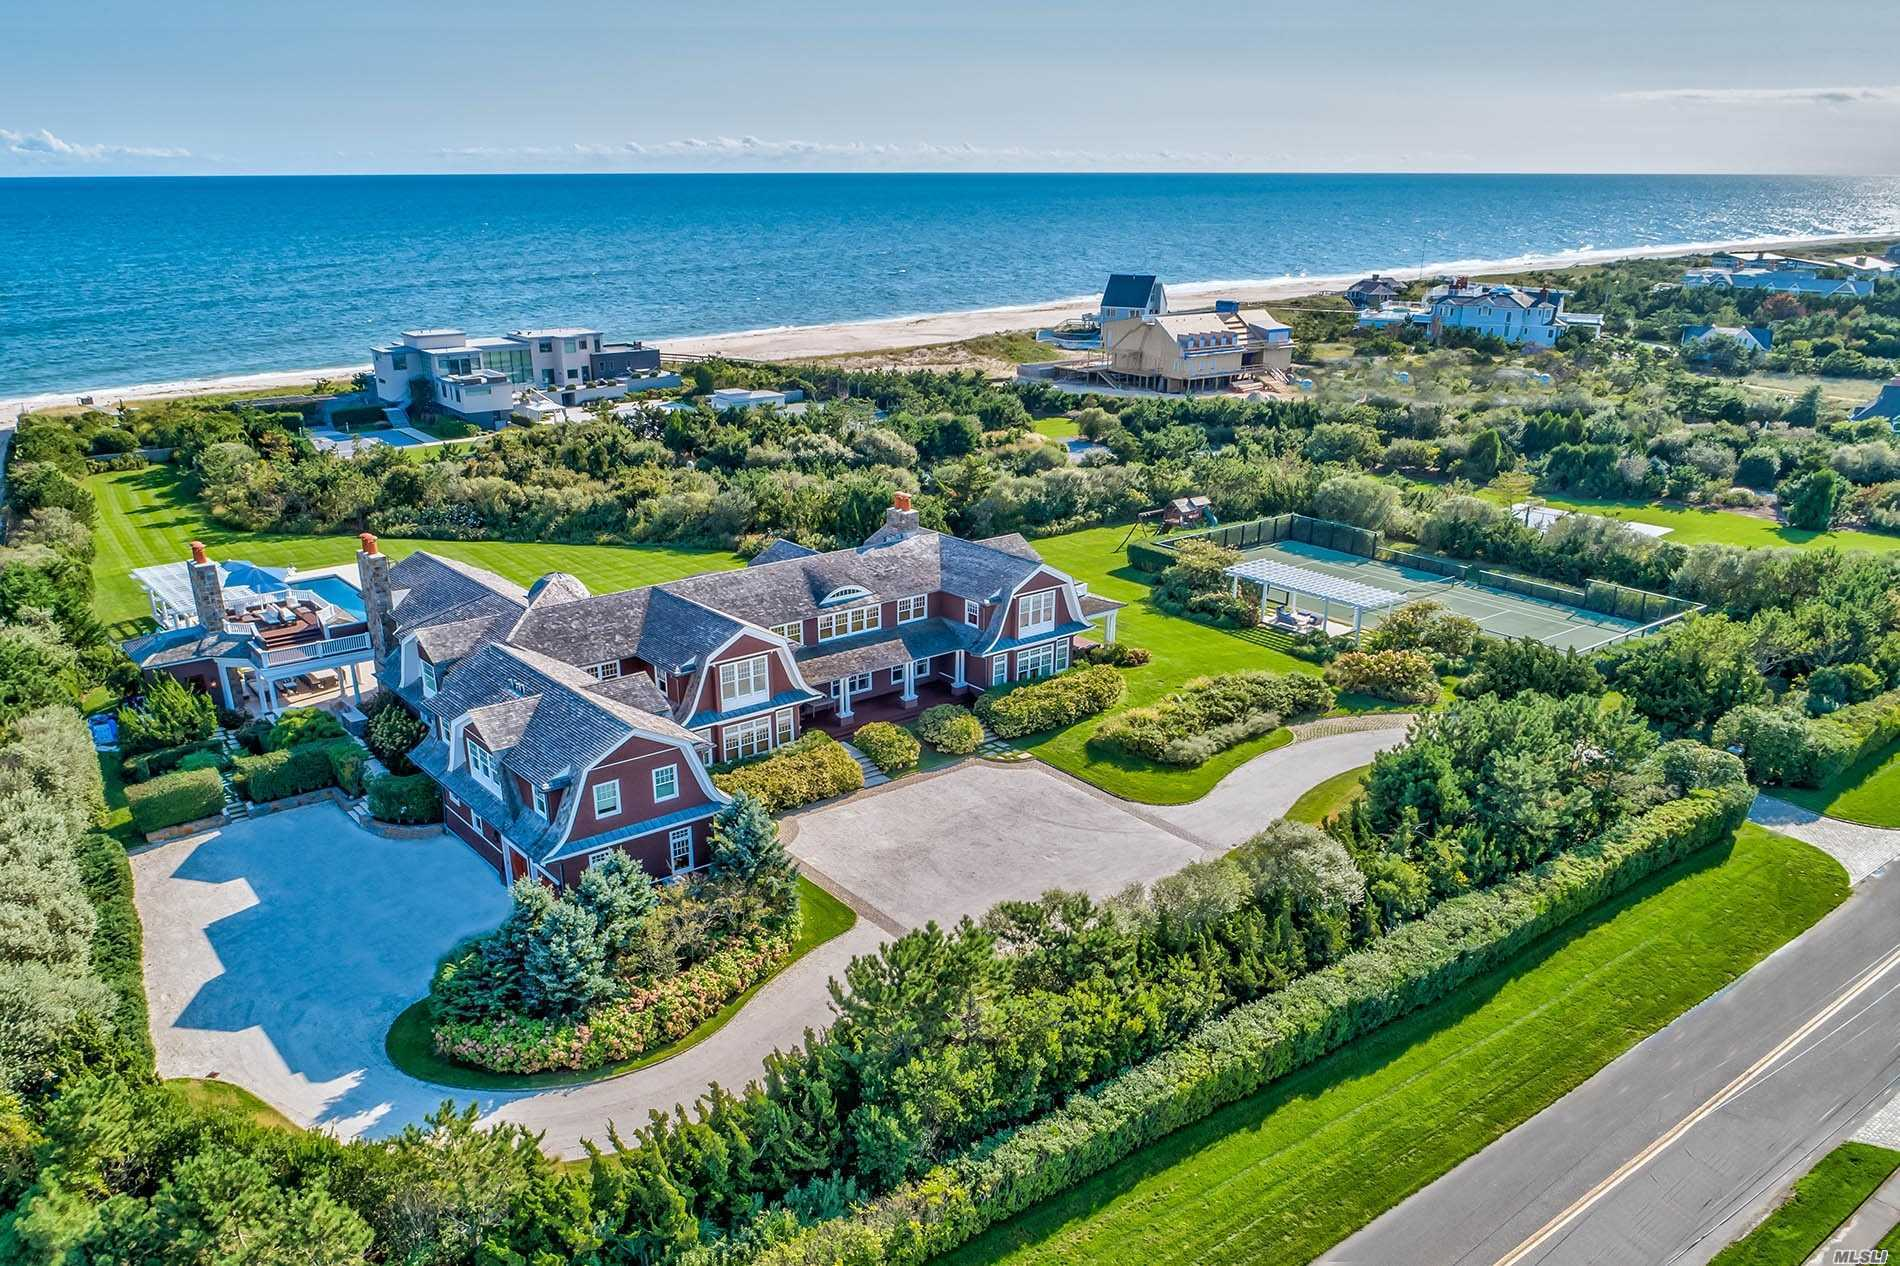 The Best Of Both Worlds...Sand Castle Is A Quiet Quogue Estate With Views And Access To Your Very Own Oceanfront. No Detail Has Been Missed Throughout The Living Areas, Gourmet Chef's Kitchen, Incredible Master Suite With His & Hers Bathrooms And Closets, Additional 8 Bedrooms, Gym With Bathroom, And Multiple Balconies Looking Out To The Ocean. Heated Gunite Pool With Retractable Cover, Outdoor Kitchen & Living Areas, All-Weather Tennis Court And Deeded Docking Rights On The Bay Side.